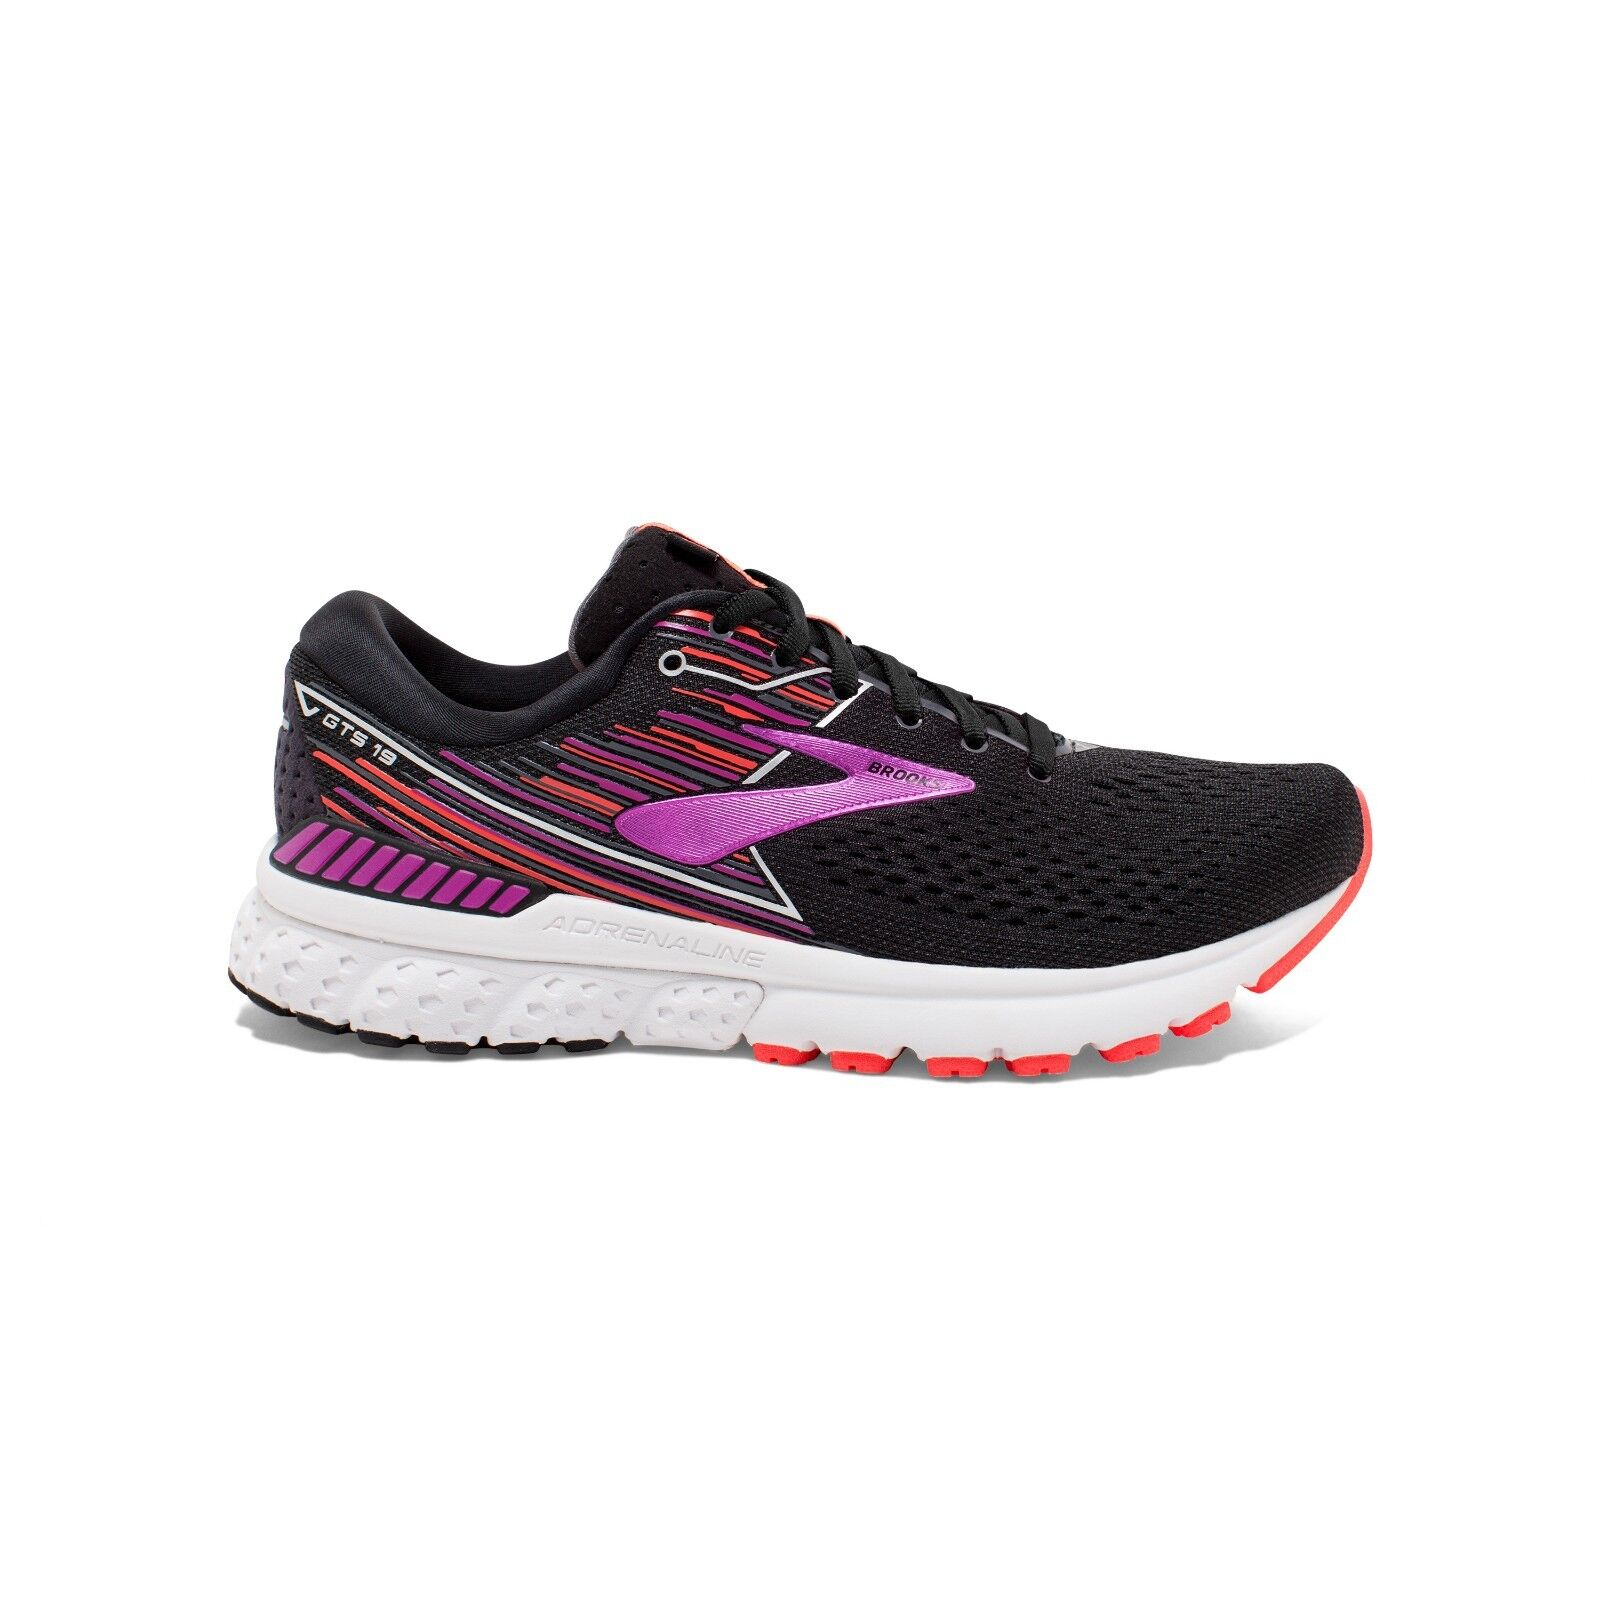 LATEST RELEASE Brooks Adrenaline GTS 19 Womens Running shoes (D) (080)